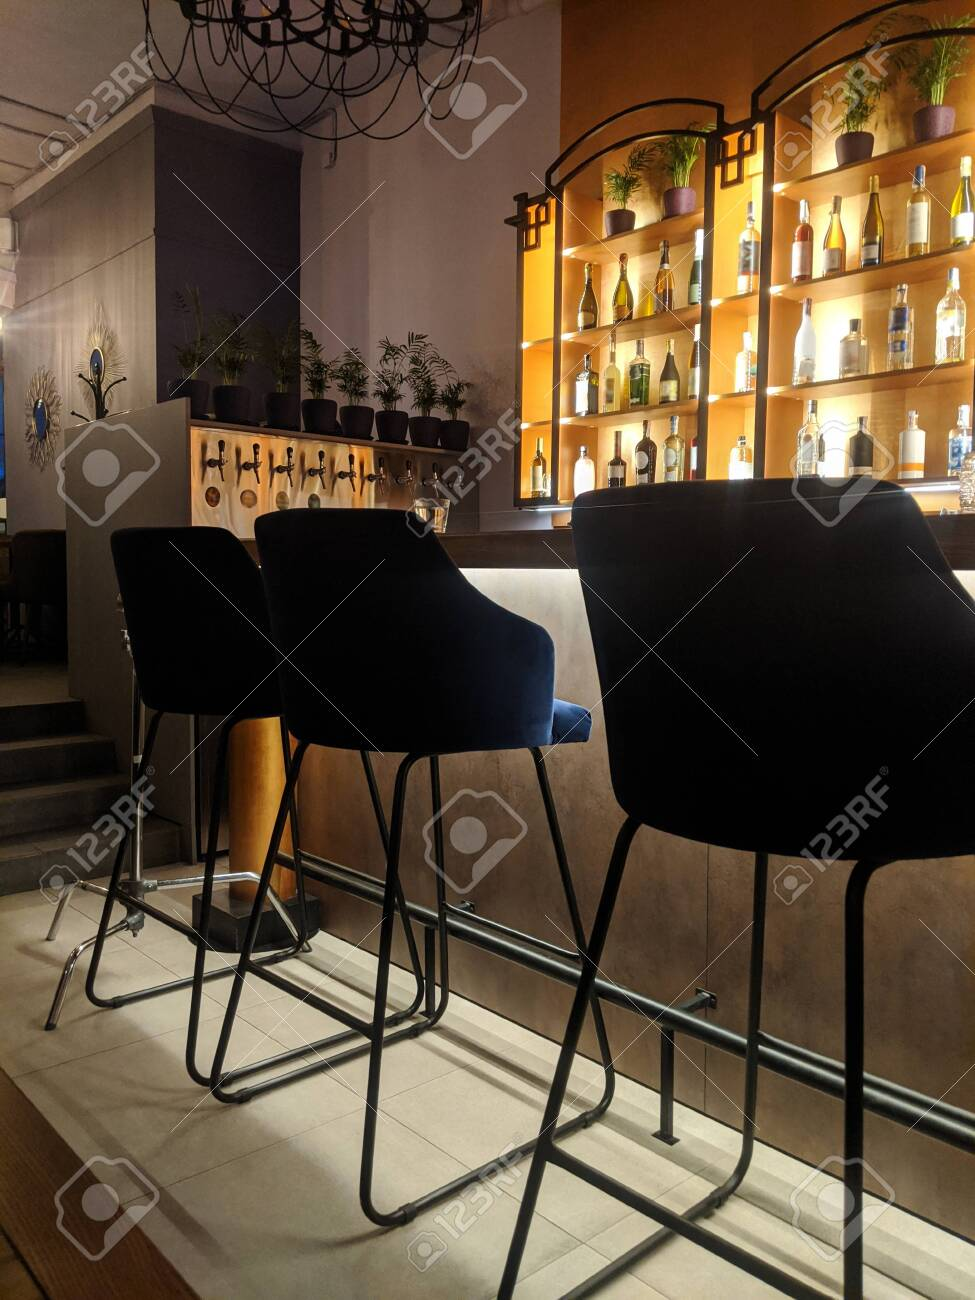 Modern Restaurant Interior Detail With Bar Stools Near Counter Stock Photo Picture And Royalty Free Image Image 144442634